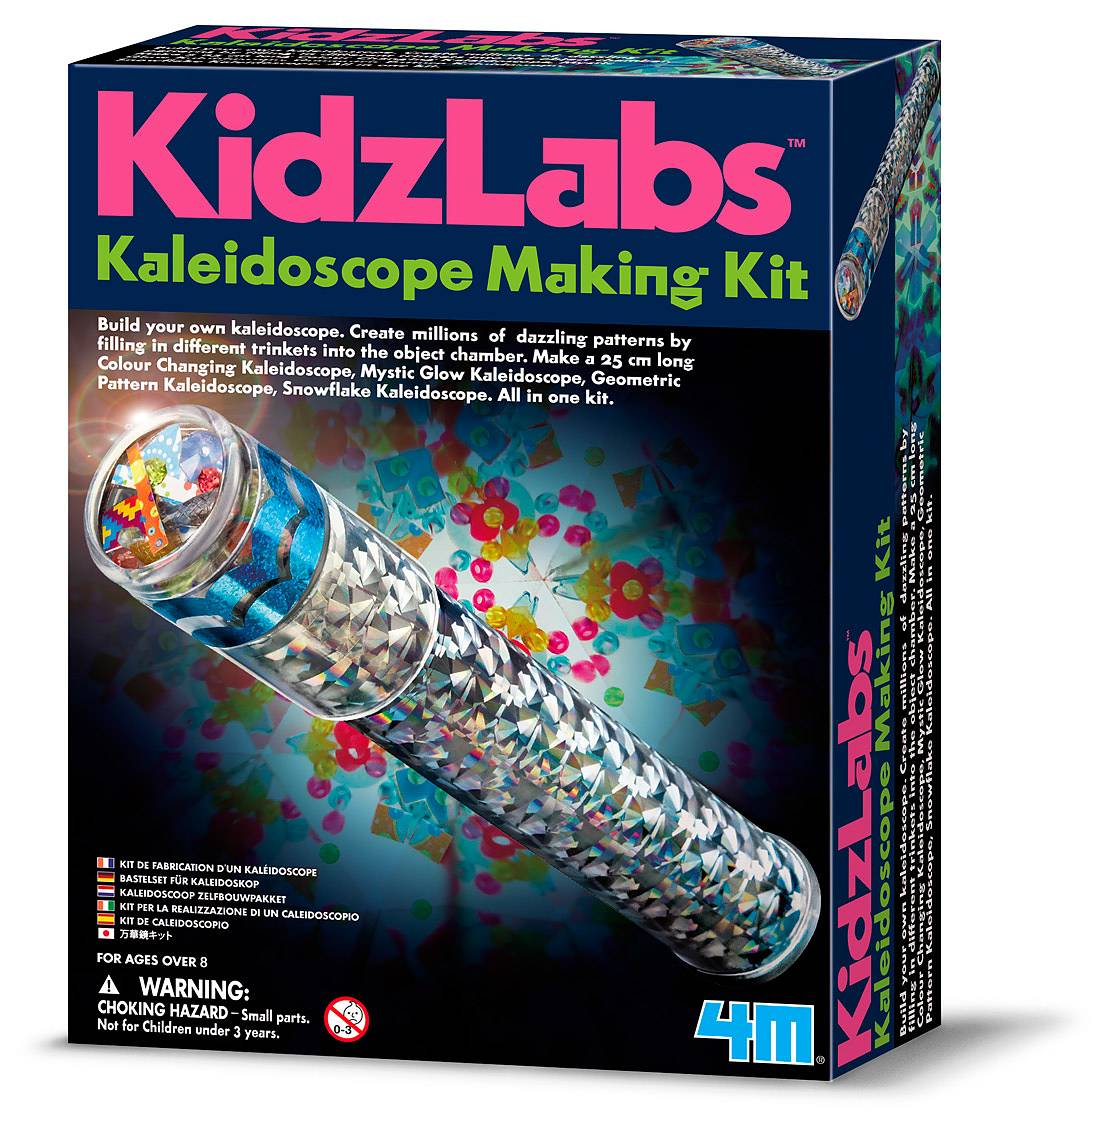 Kaleidoskope Making Kit 4M KidzLabs